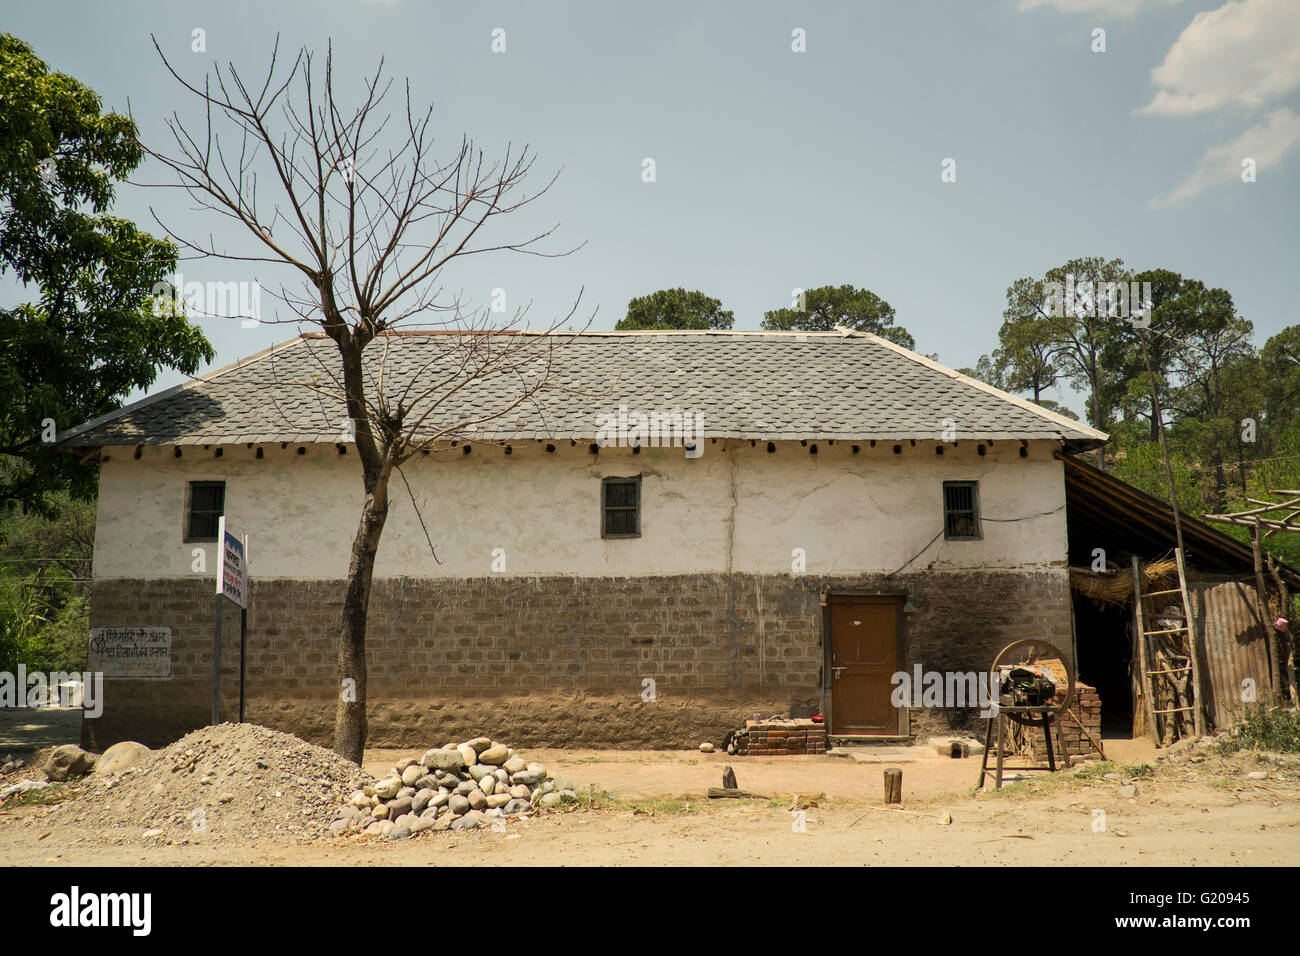 A typical village house in Himachal Pradesh, India - Stock Image